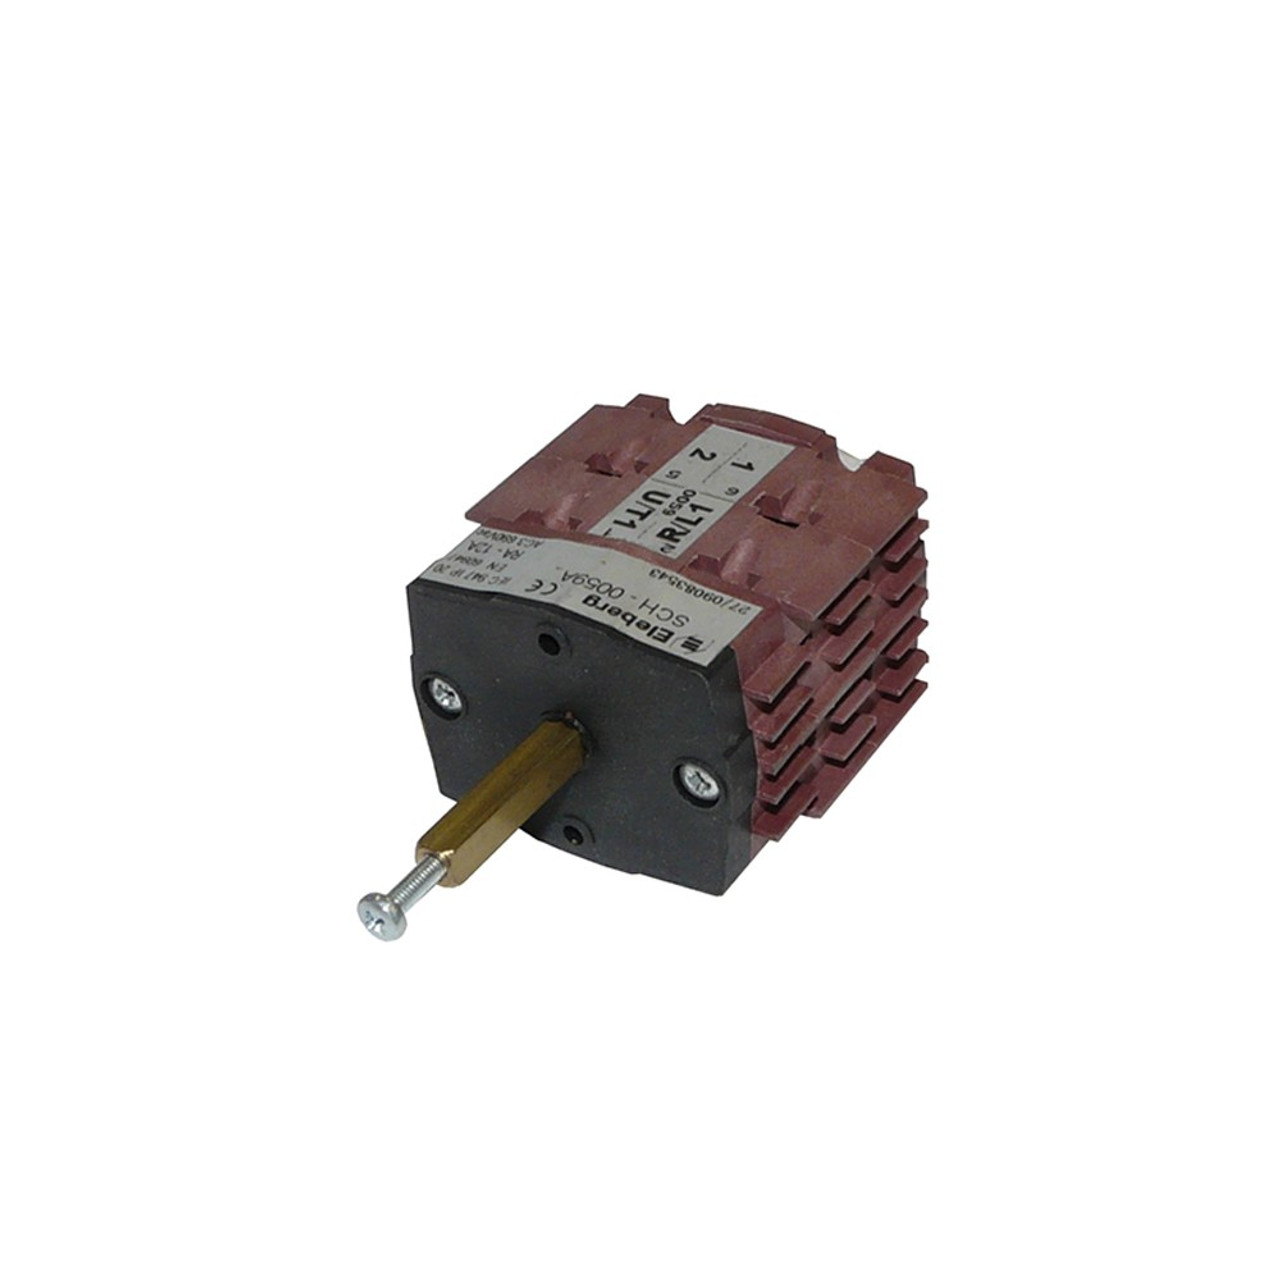 Imer Spare Part Switch Box Mix 120 (Old) Turn